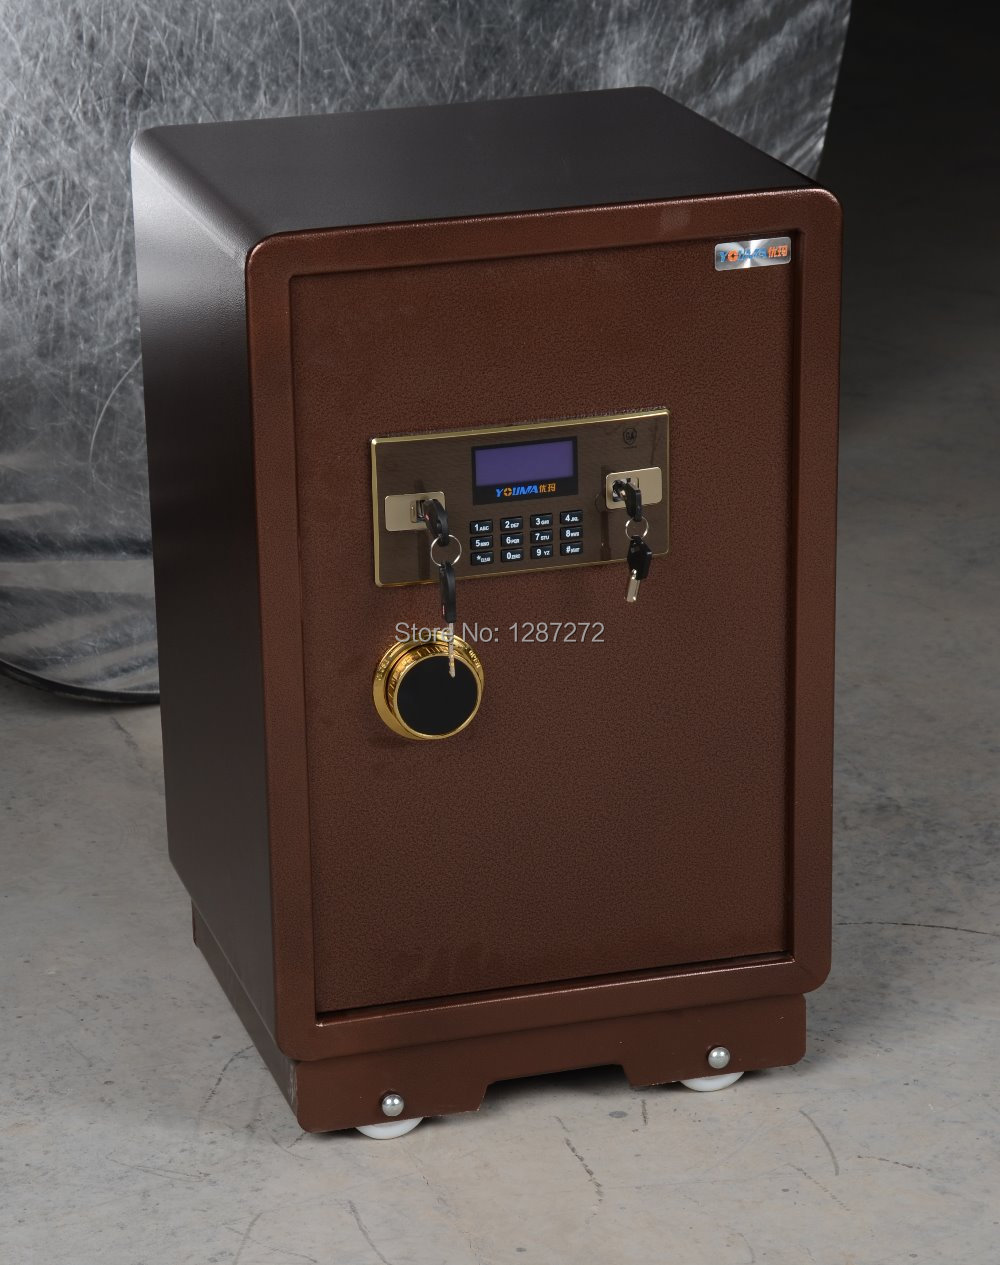 Strongbox,electronic strongbox steel digital safe lock use in the home,office and hotel,safe box height is 150cm(China (Mainland))